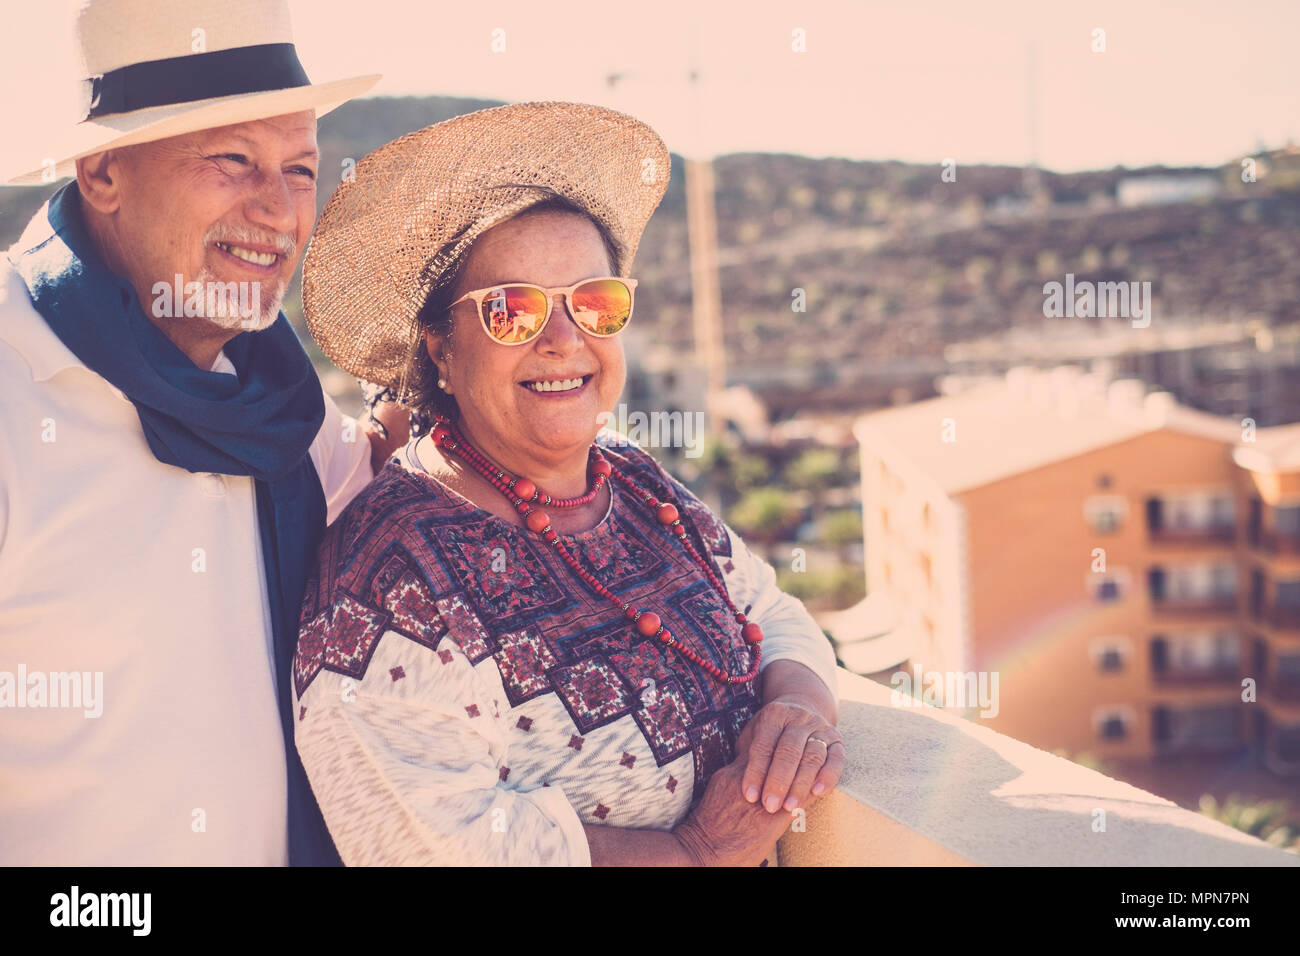 man and woman aged stay together with smiles and happiness on the terrace rooftop with nice view. sunlight and both with hats - Stock Image